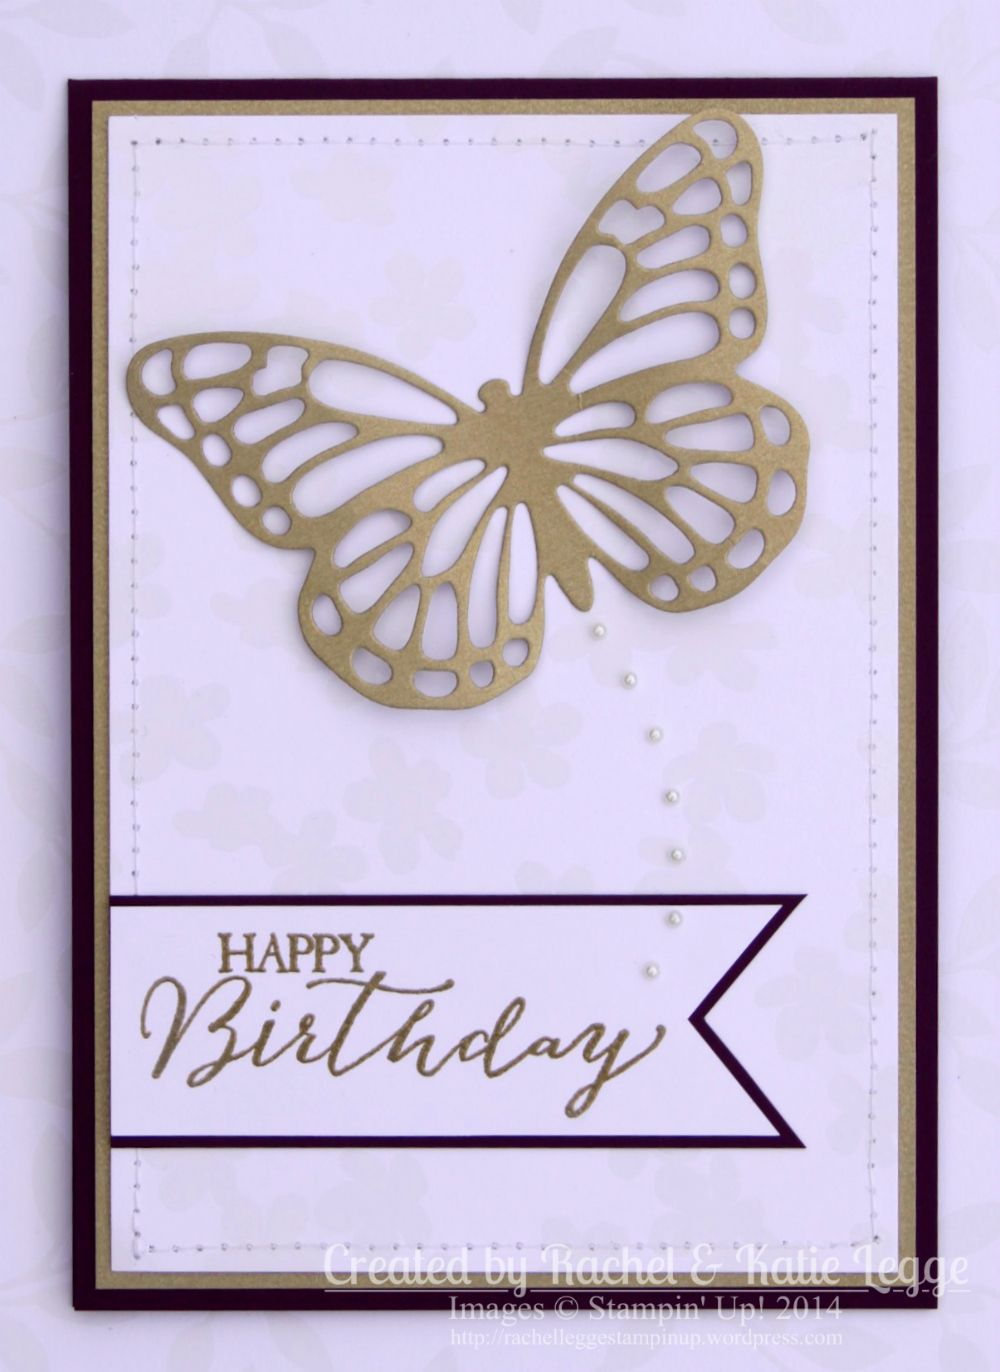 Stampin' Up! Butterfly Thinlits Card   Created by Rachel and Katie Legge rachelleggestampinup.wordpress.com #Occasions2015 #SaleABration2015 #StampinUp